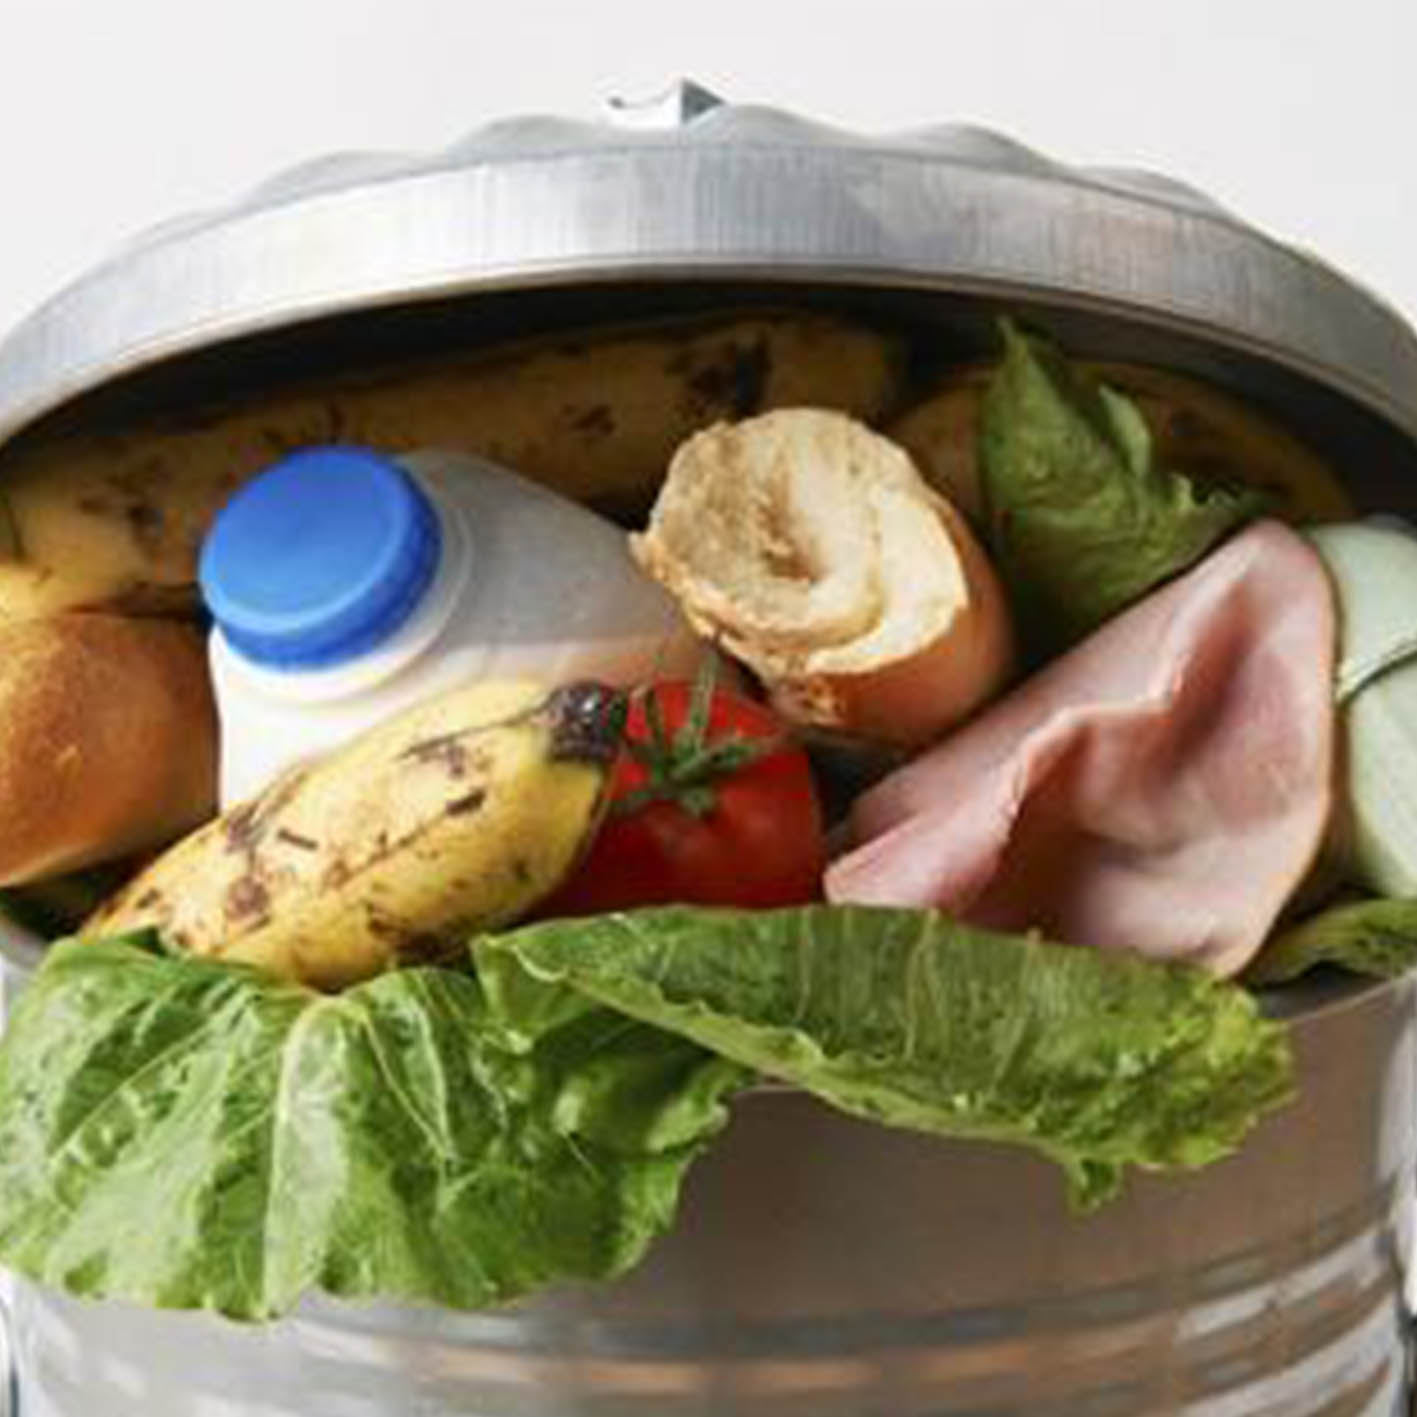 Reducing food waste vital for India's food security